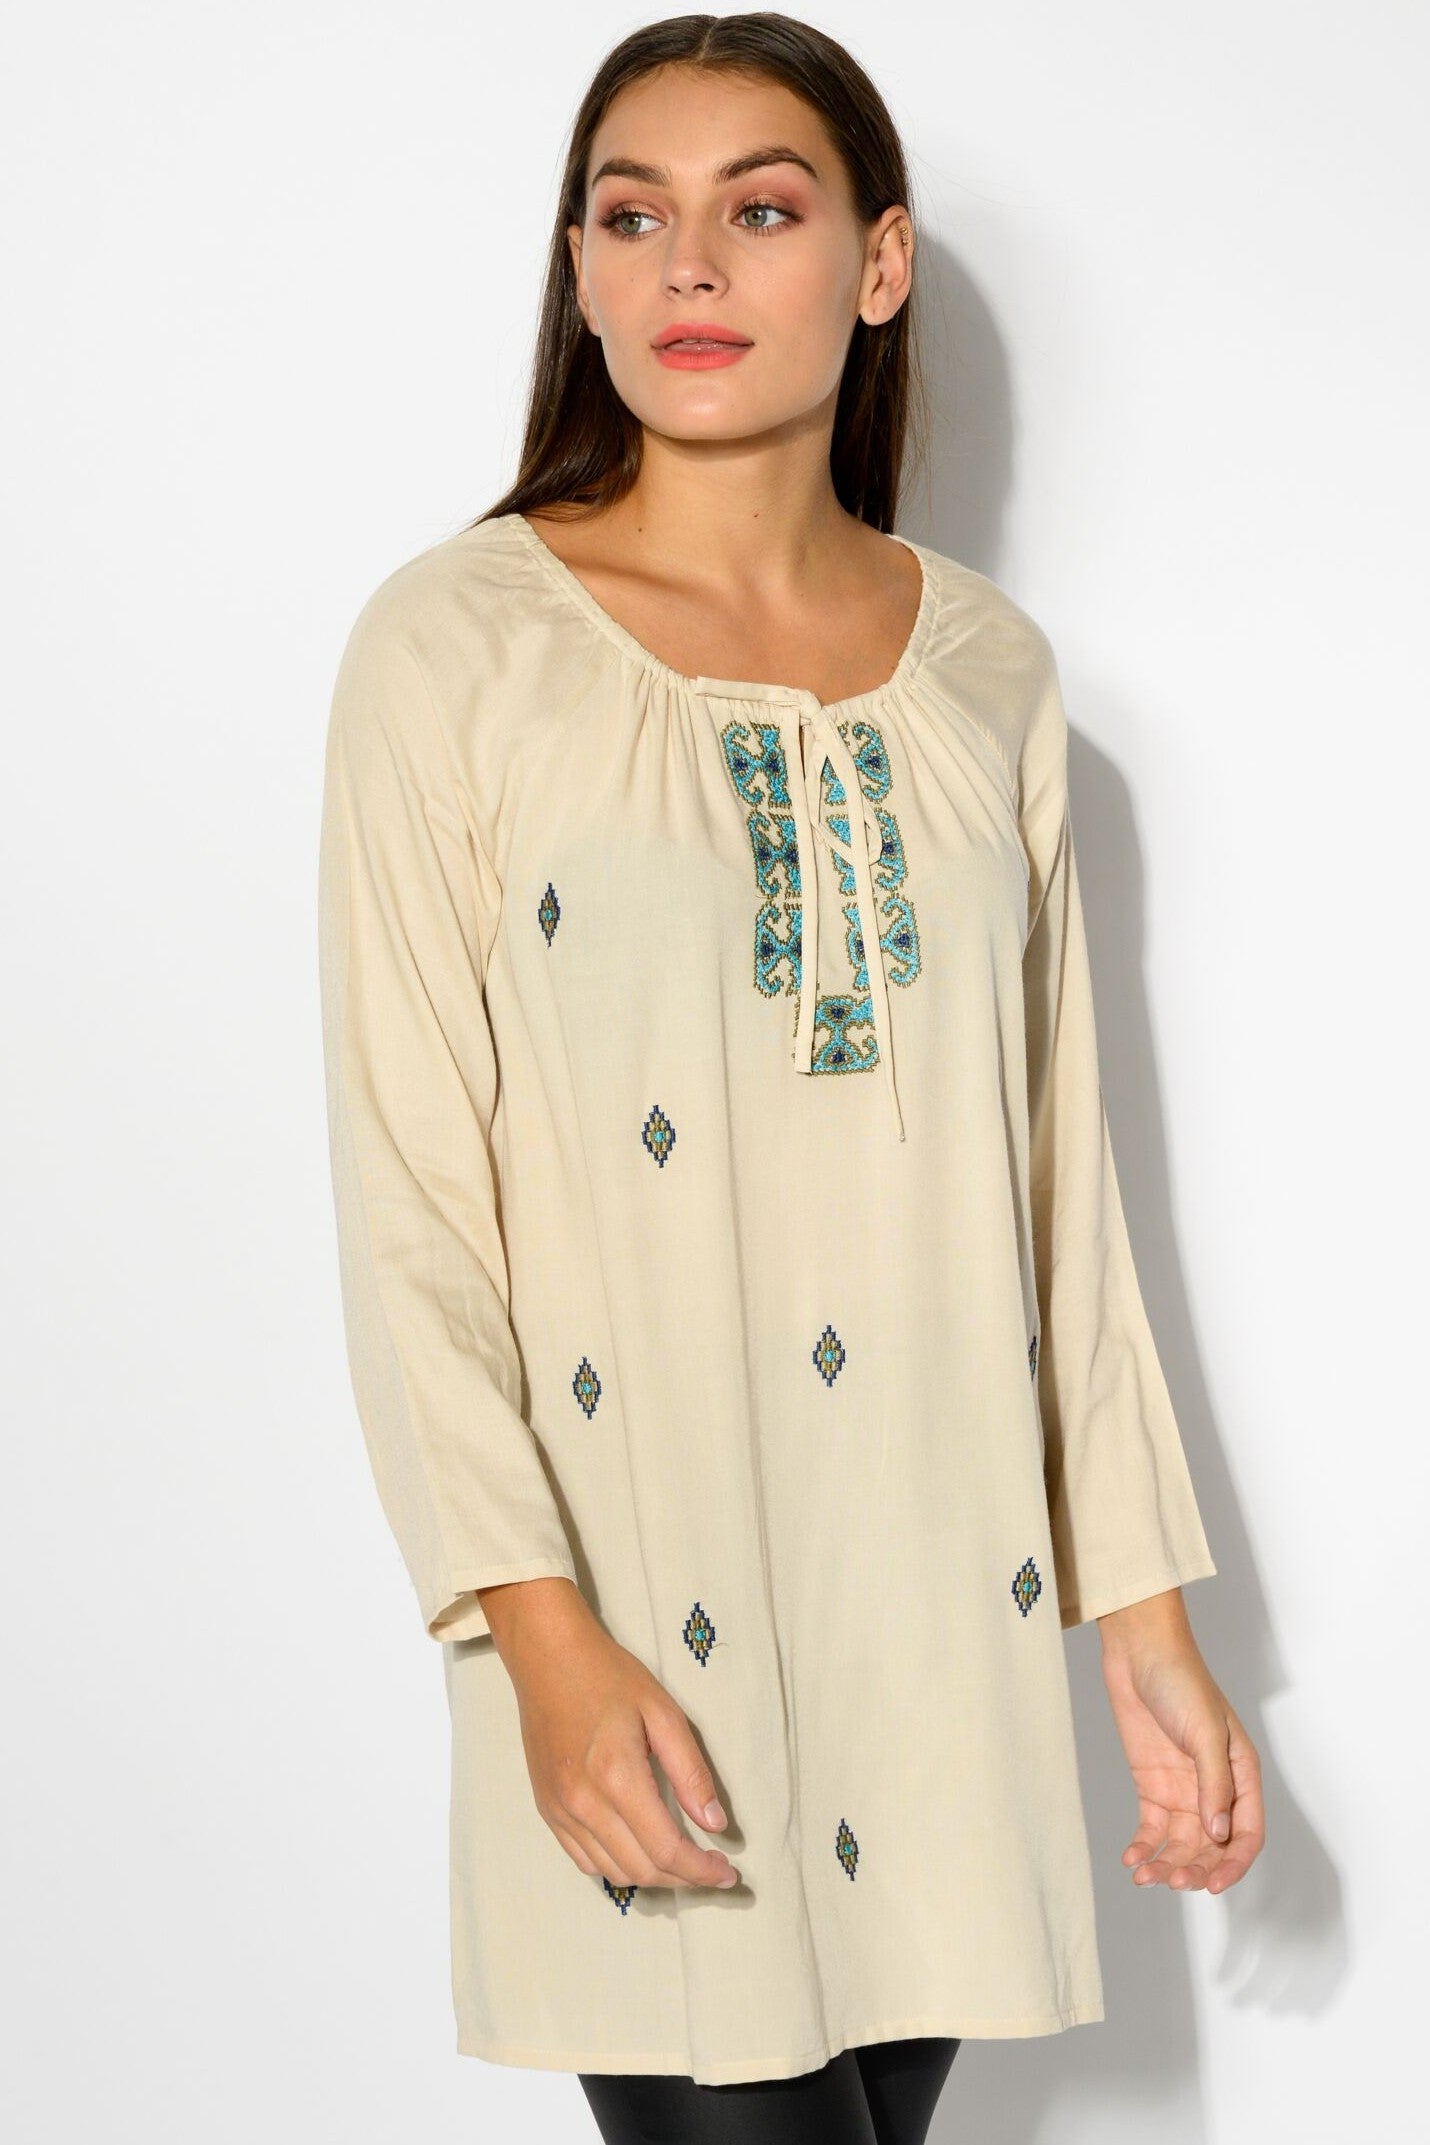 Fawn Madelyn Tunic Top | I Love Tunics | Tunic Tops | Tunic | Tunic Dresses  | womens clothing online